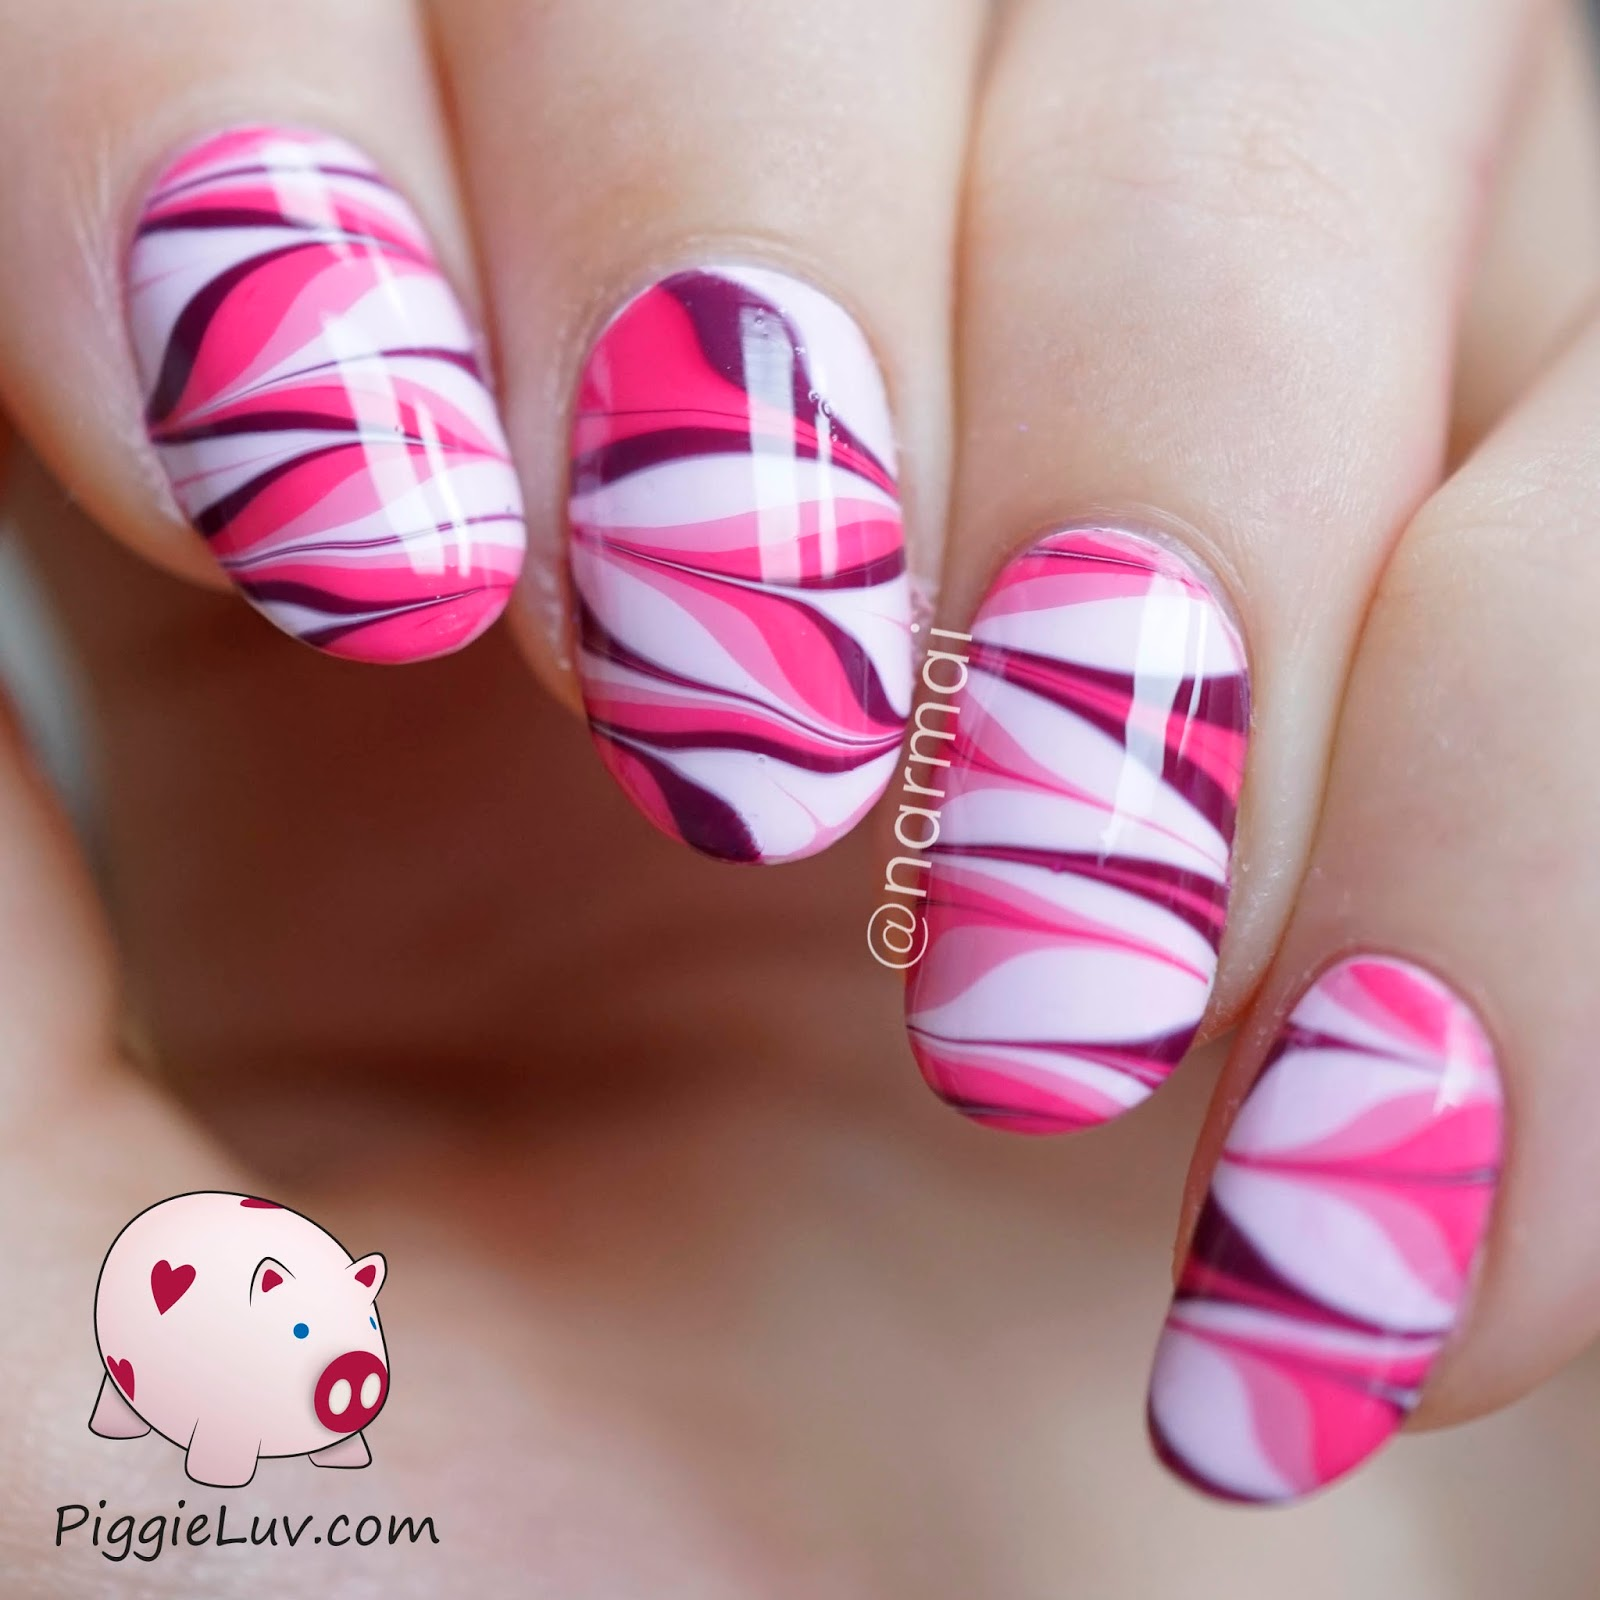 Marble Nail Art: PiggieLuv: How NOT To Do Water Marble Nail Art